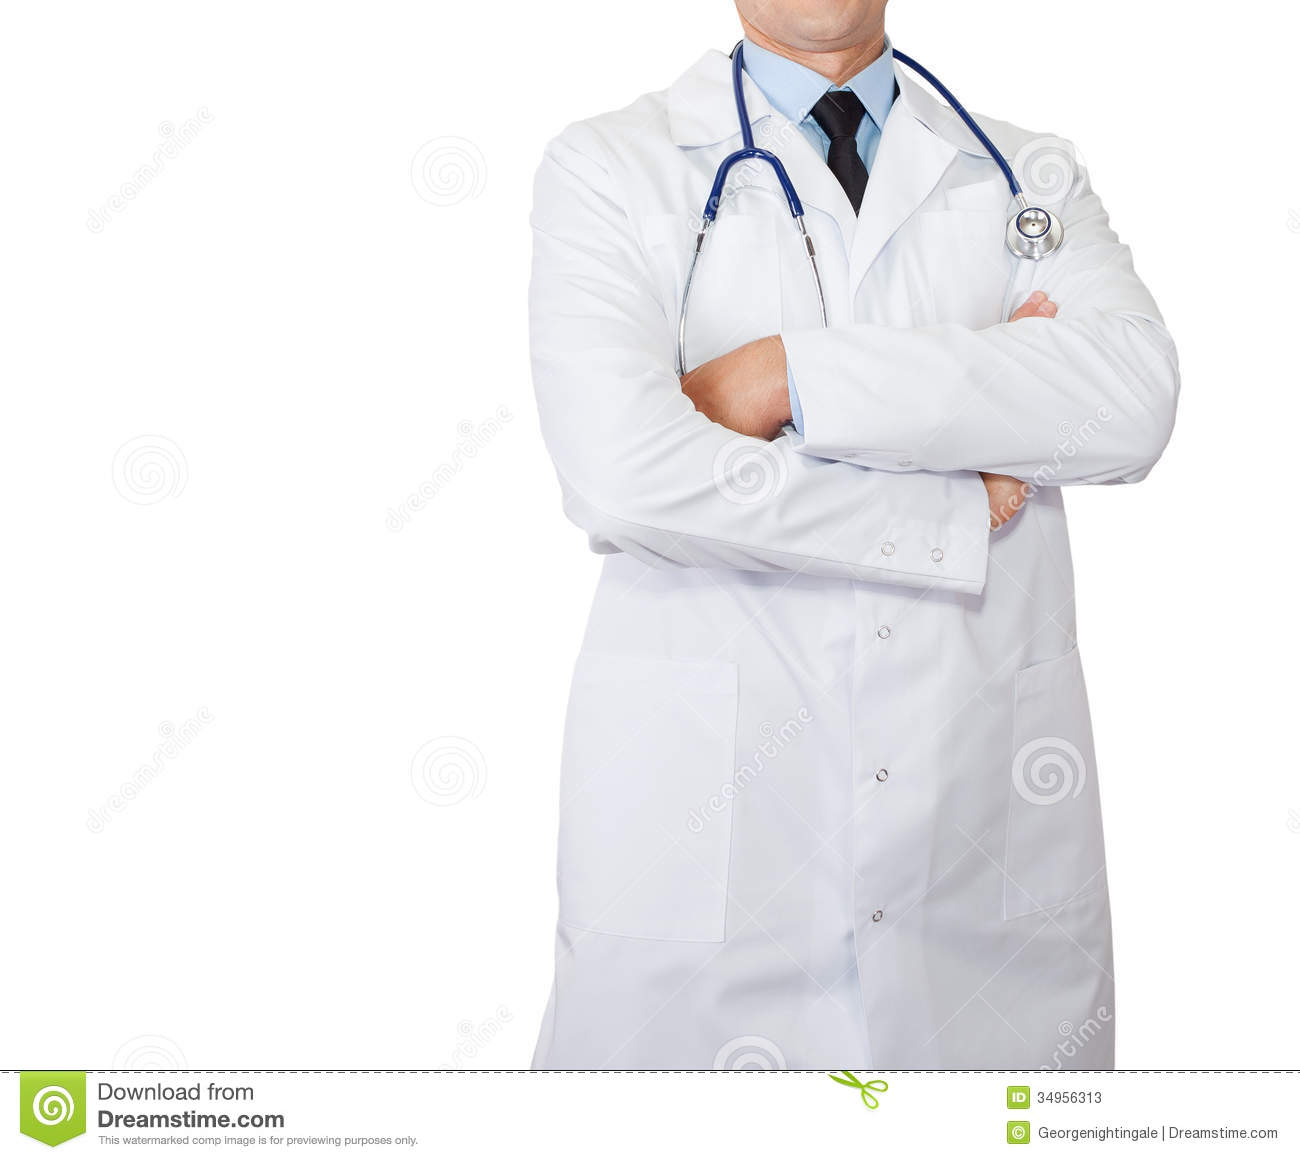 Doctor's Lab White Coat Stock Photos - Image: 34956313